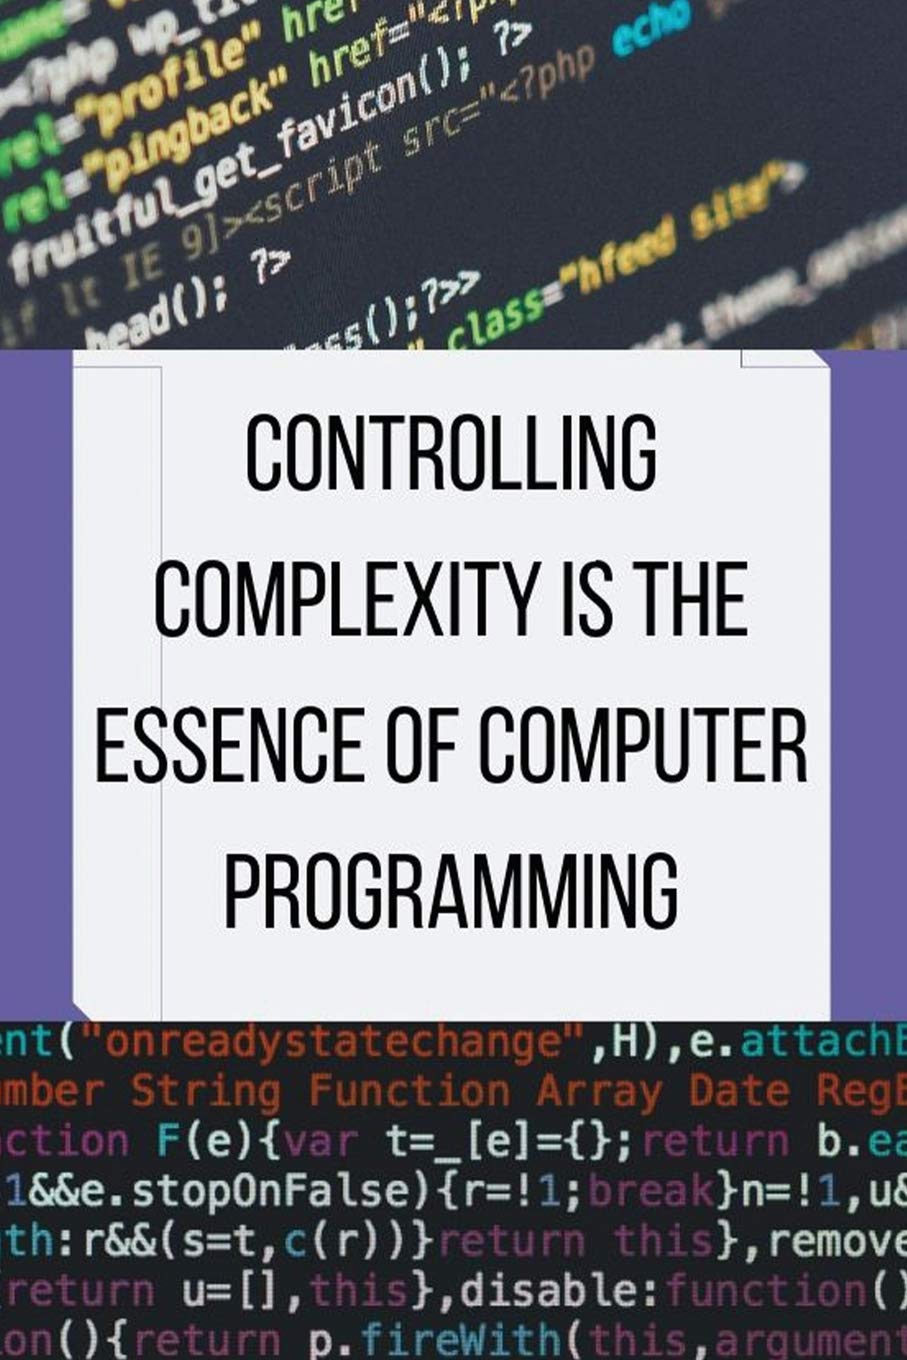 Controlling complexity is the essence of computer